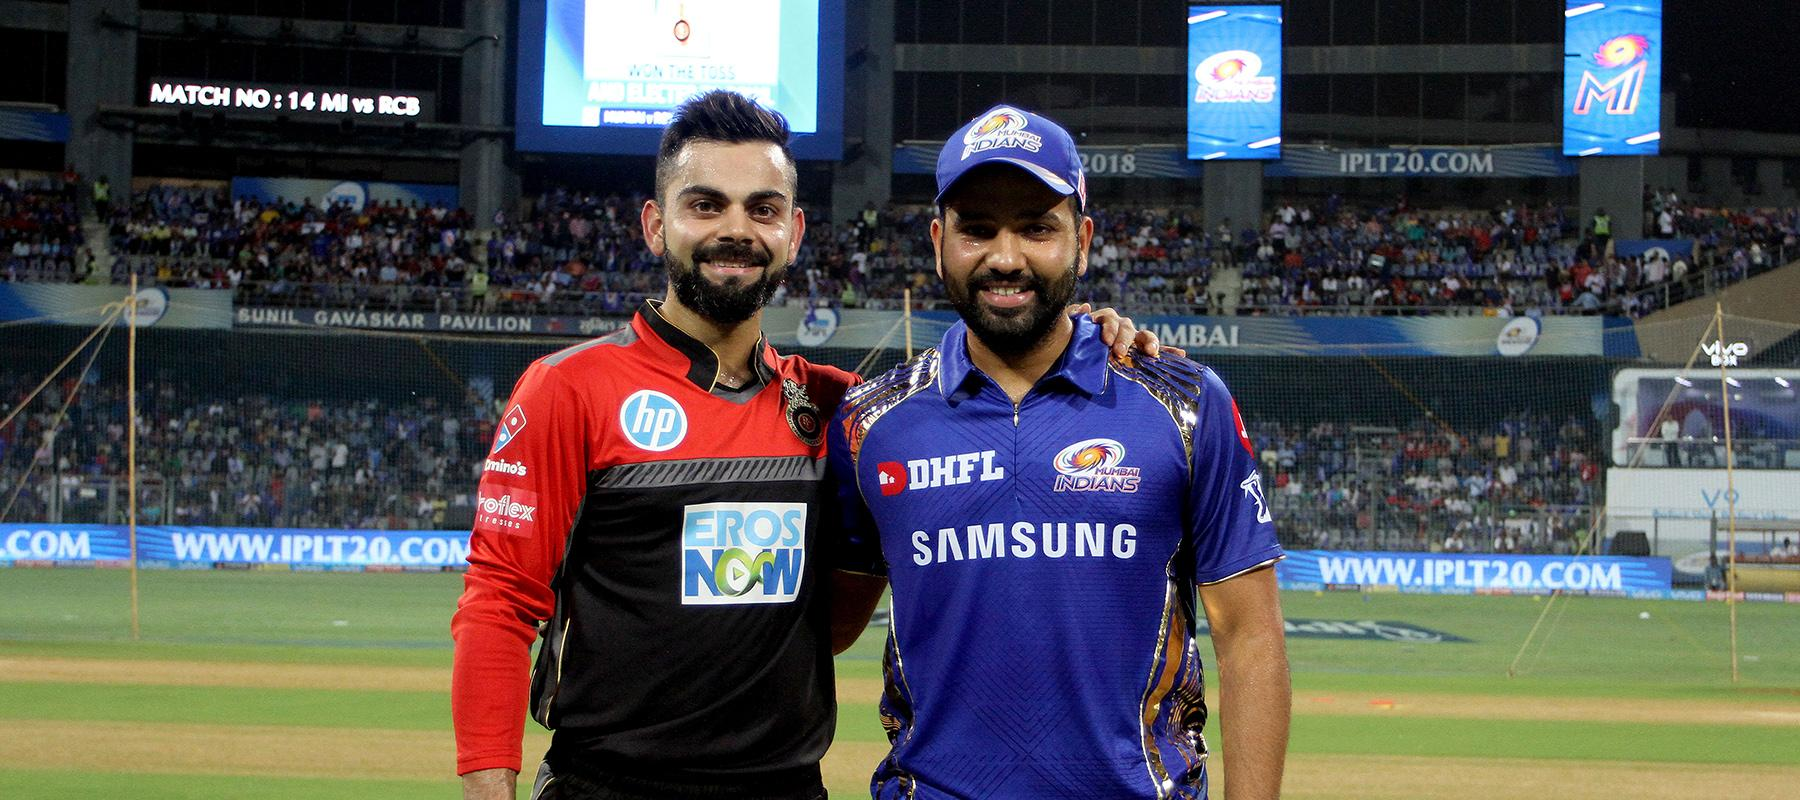 IPL 2020: Match 48 - Mumbai Indians vs Royal Challengers Bangalore - 5 Key Players To Watch Out For